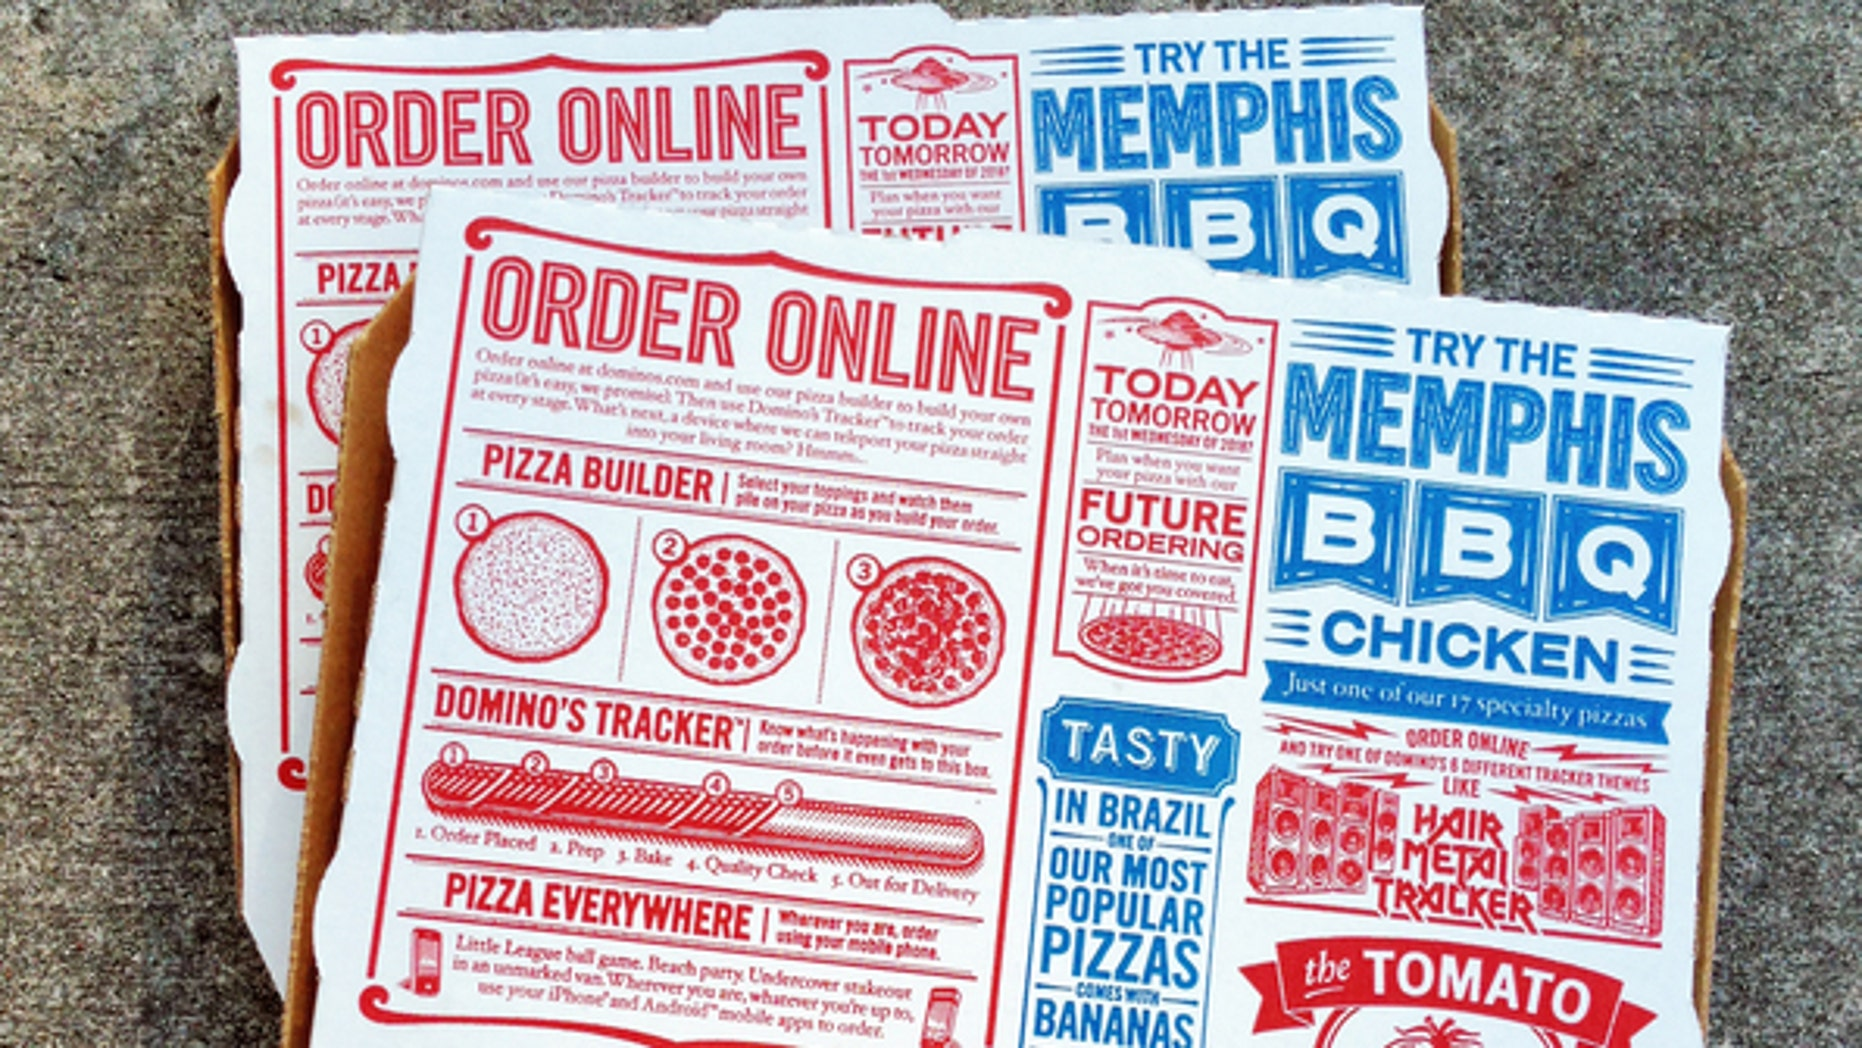 """""""West Palm Beach, USA - March 7, 2013: Two Domino's Pizza boxes. Domino's is one of the largest pizza delivery franchises in the USA. The packaging is covered with ads and pizza trivia, as well as ways to access Domino's through mobile phone apps and social media sites like Facebook and Twitter."""""""